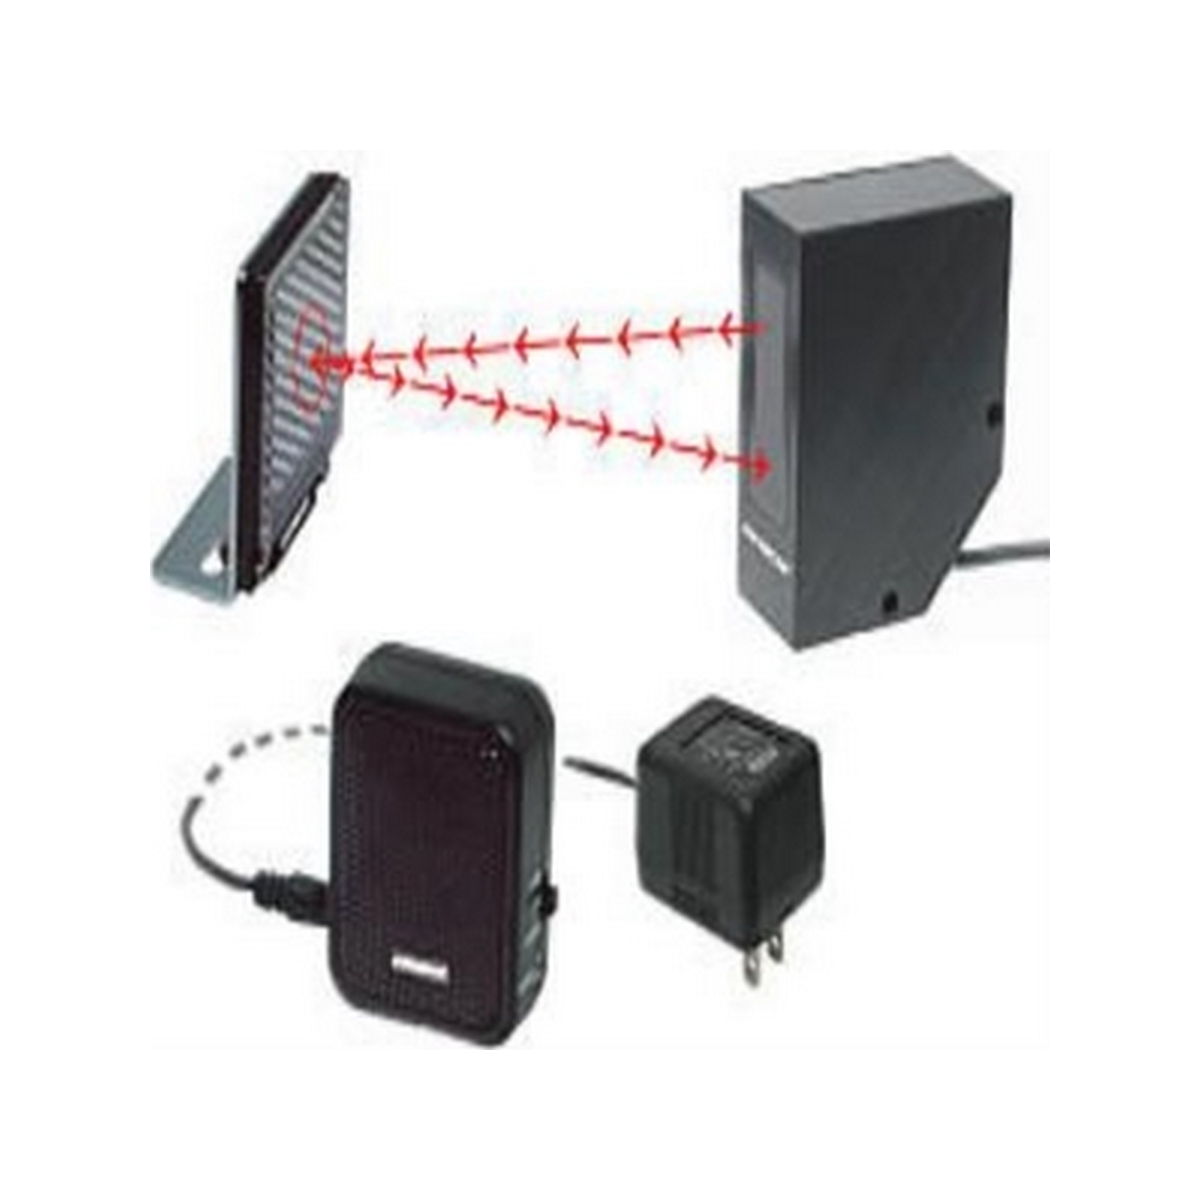 Seco-larm E-931CS22RRCQ  Entry Alert System. Reflective beam sensor with chime for door entry indication.